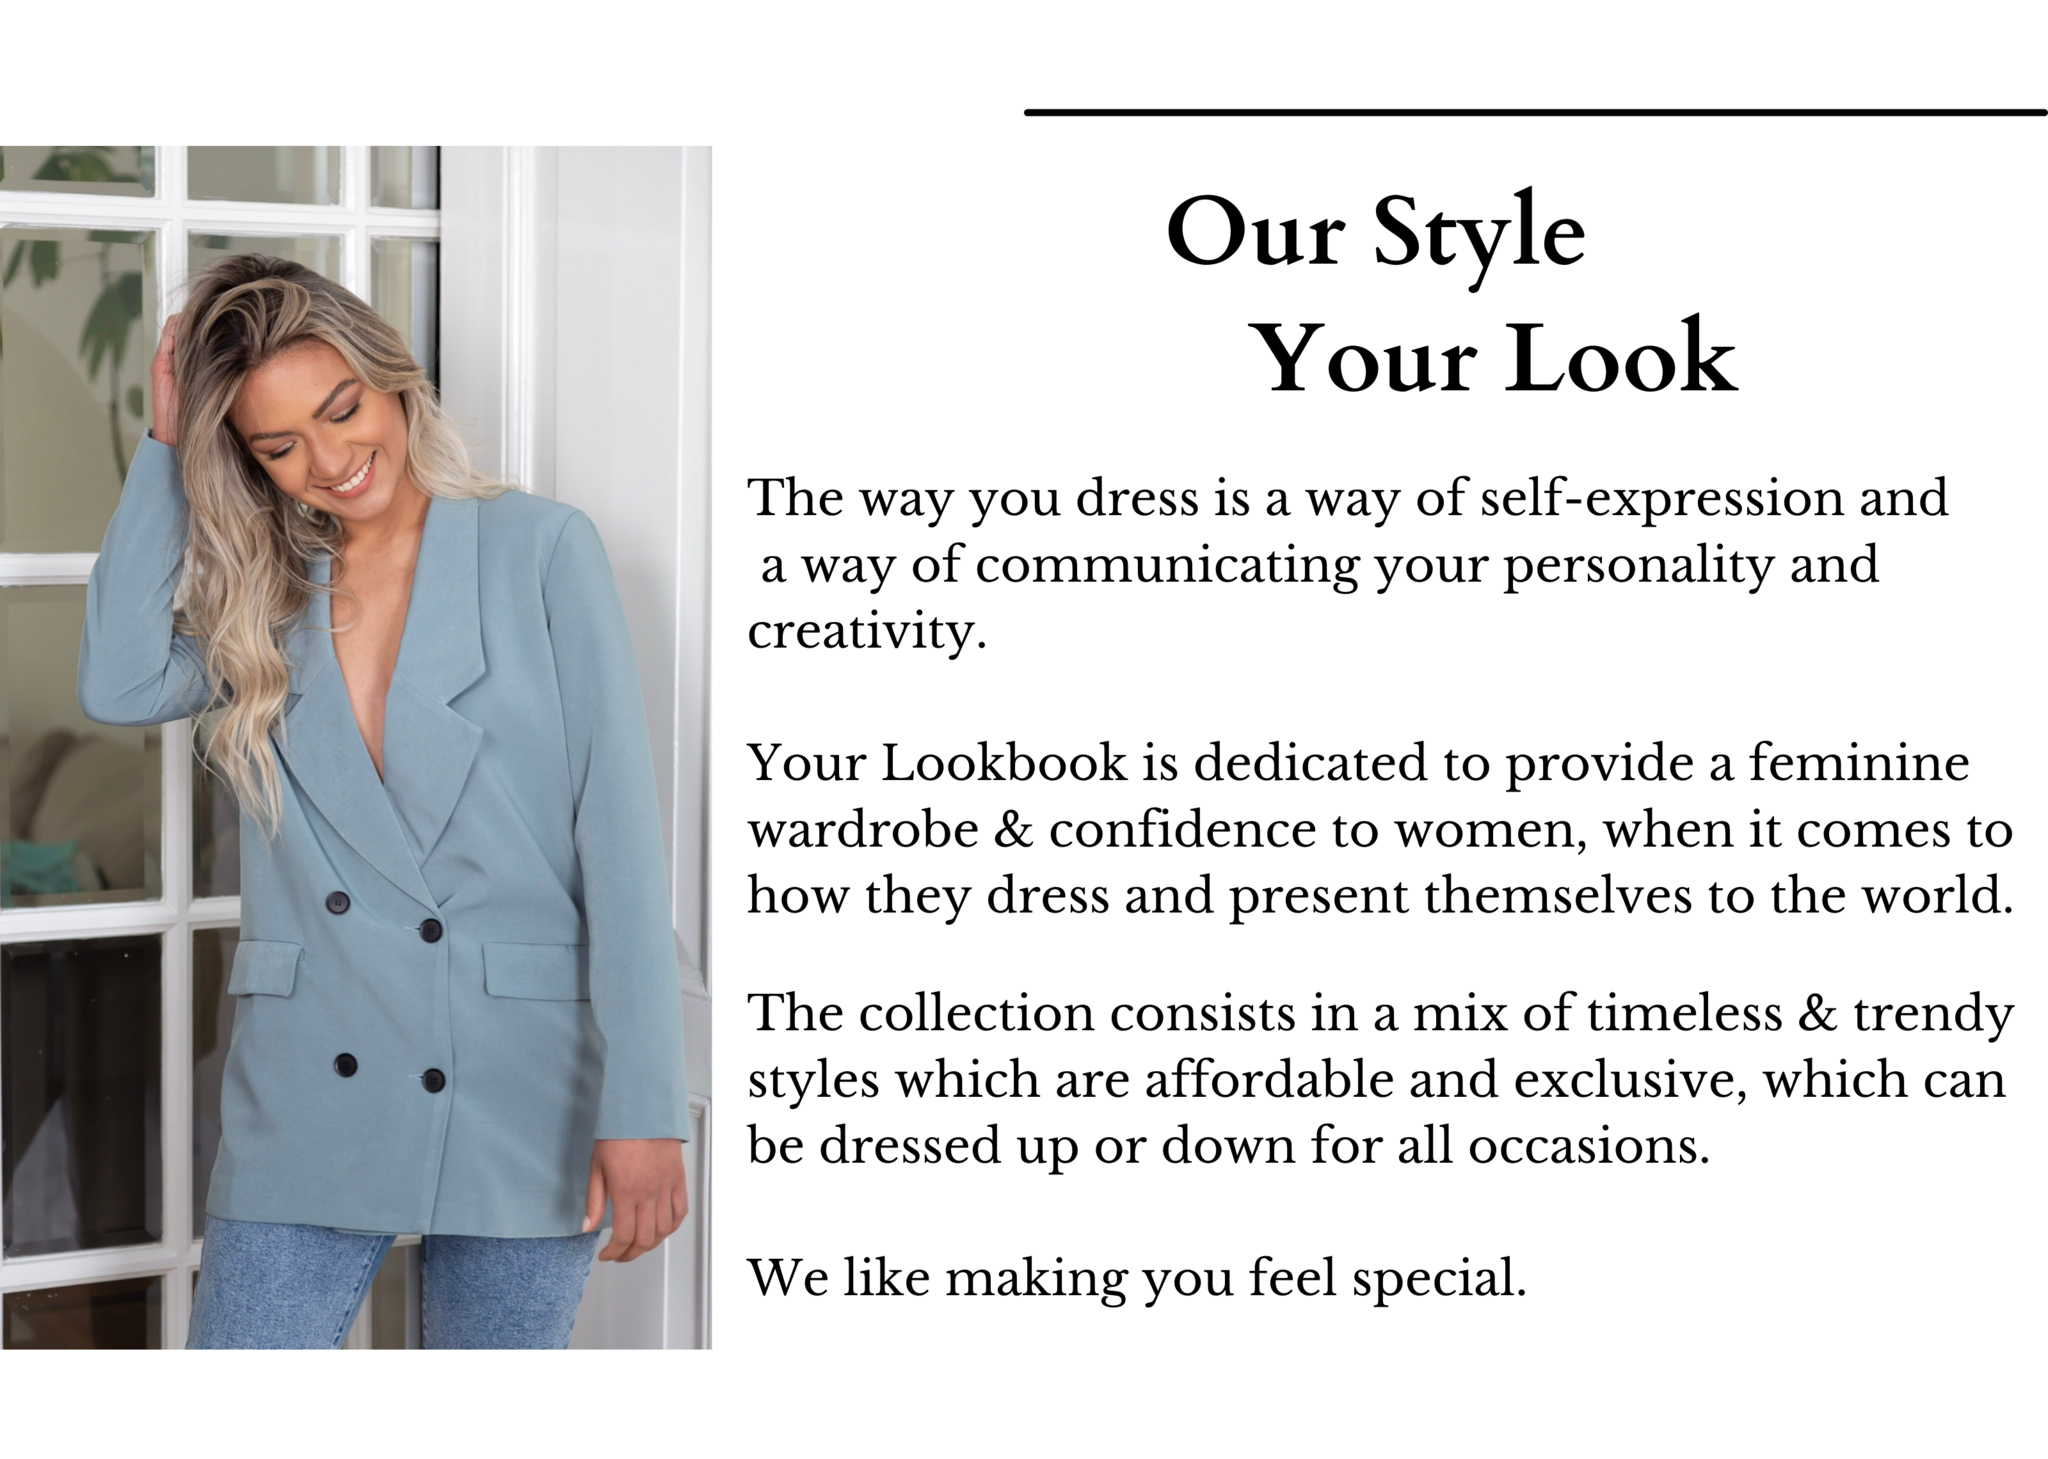 The collection consists in a mix of timeless & trendy styles which are affordable and exclusive, which can be dressed up or down for all occasions.   We like making you feel special.